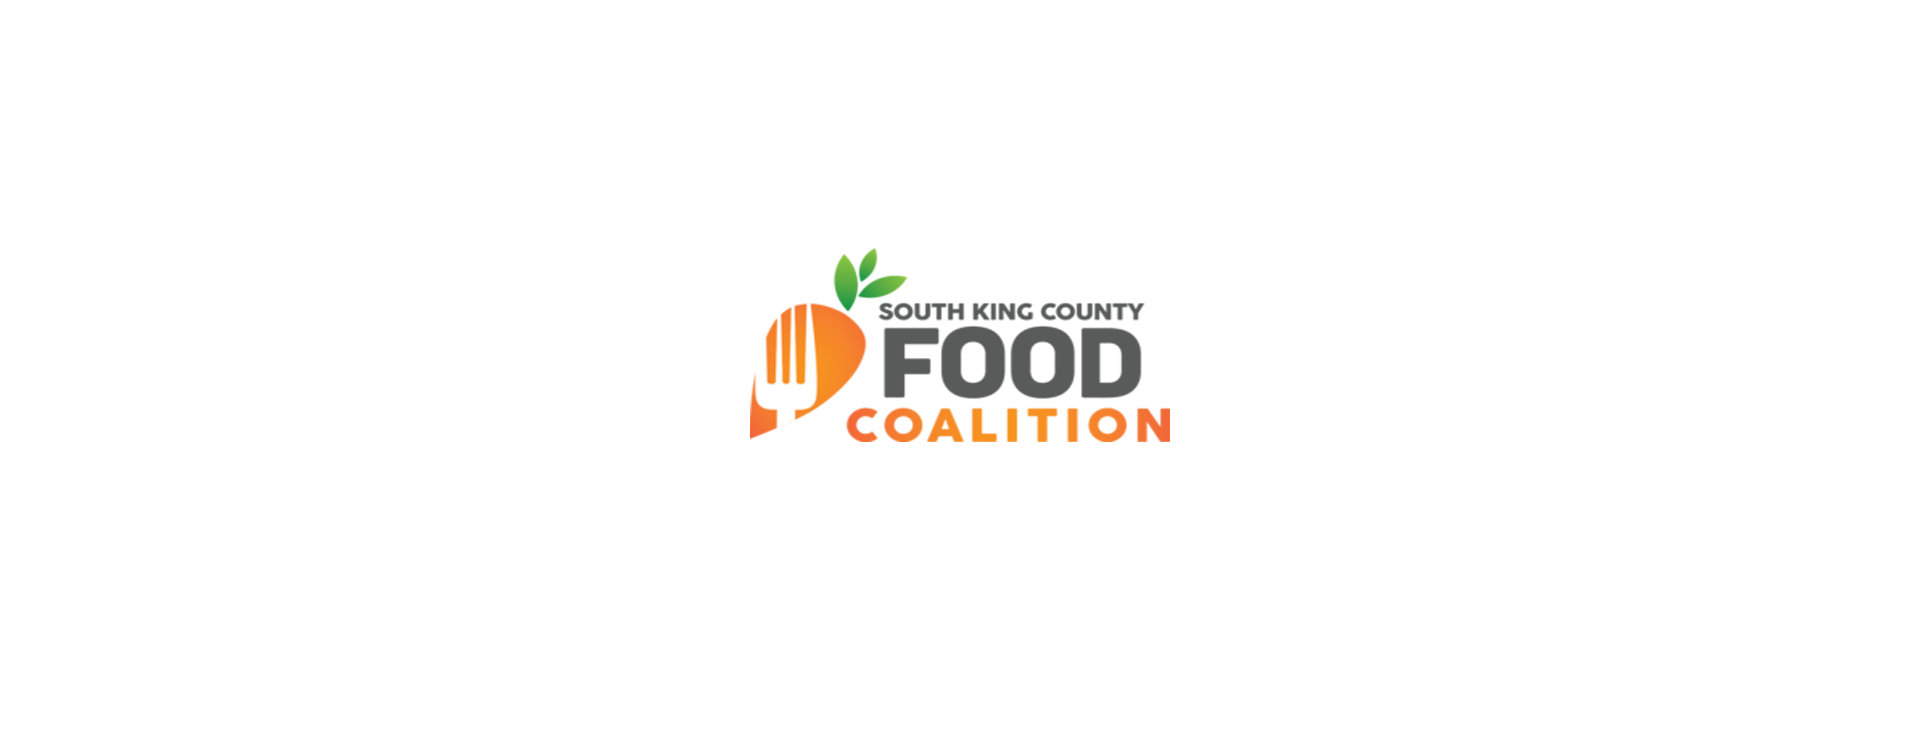 South King County Food Coalition